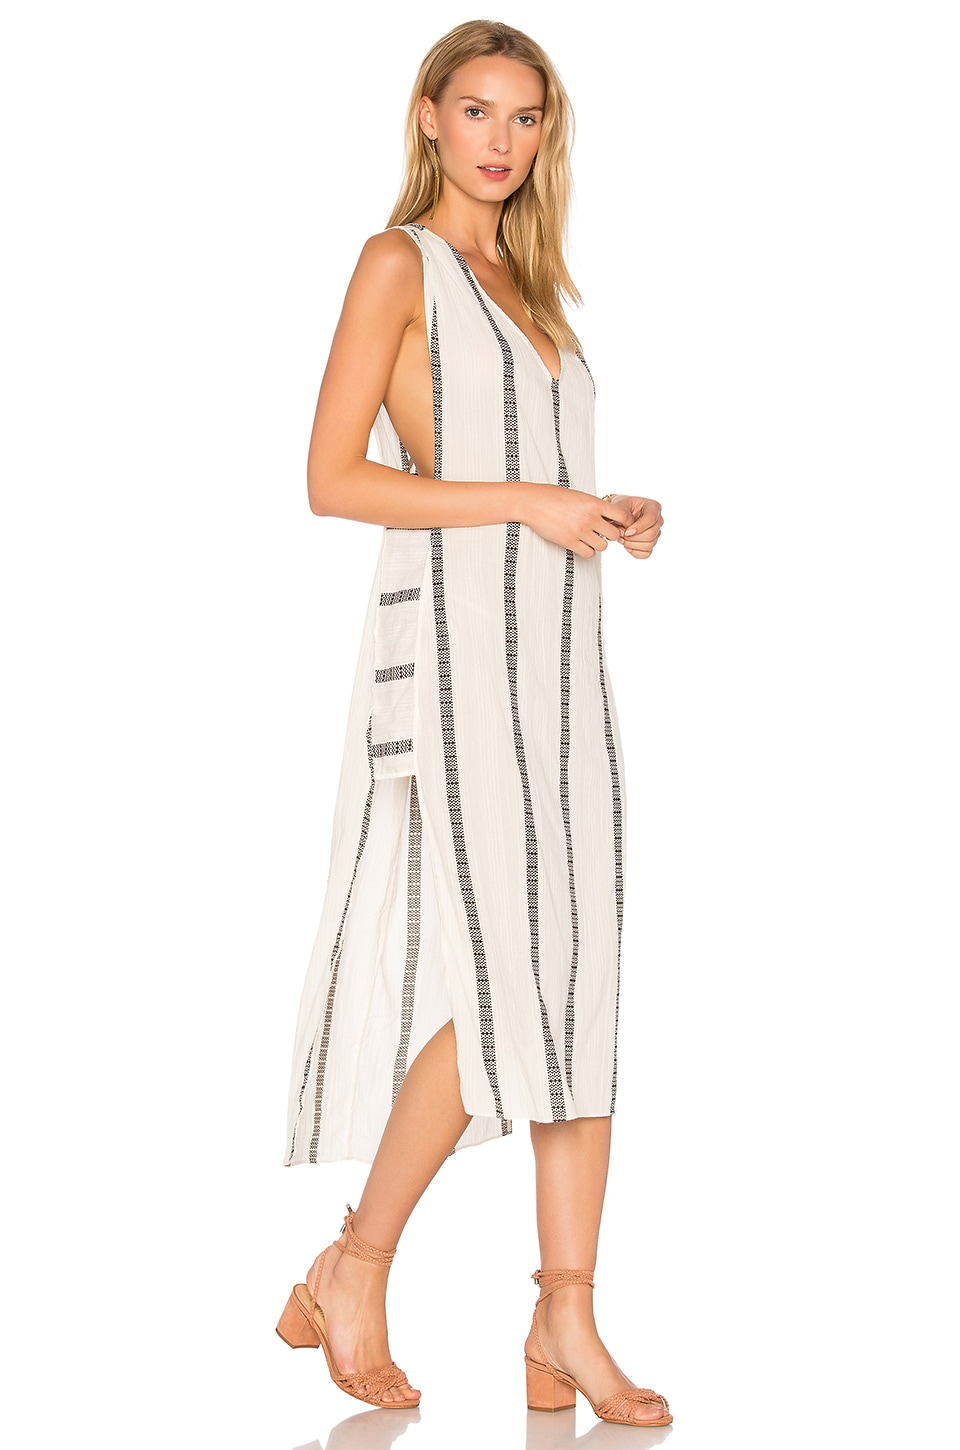 Vix Swimwear Stripe Luanna Caftan in White